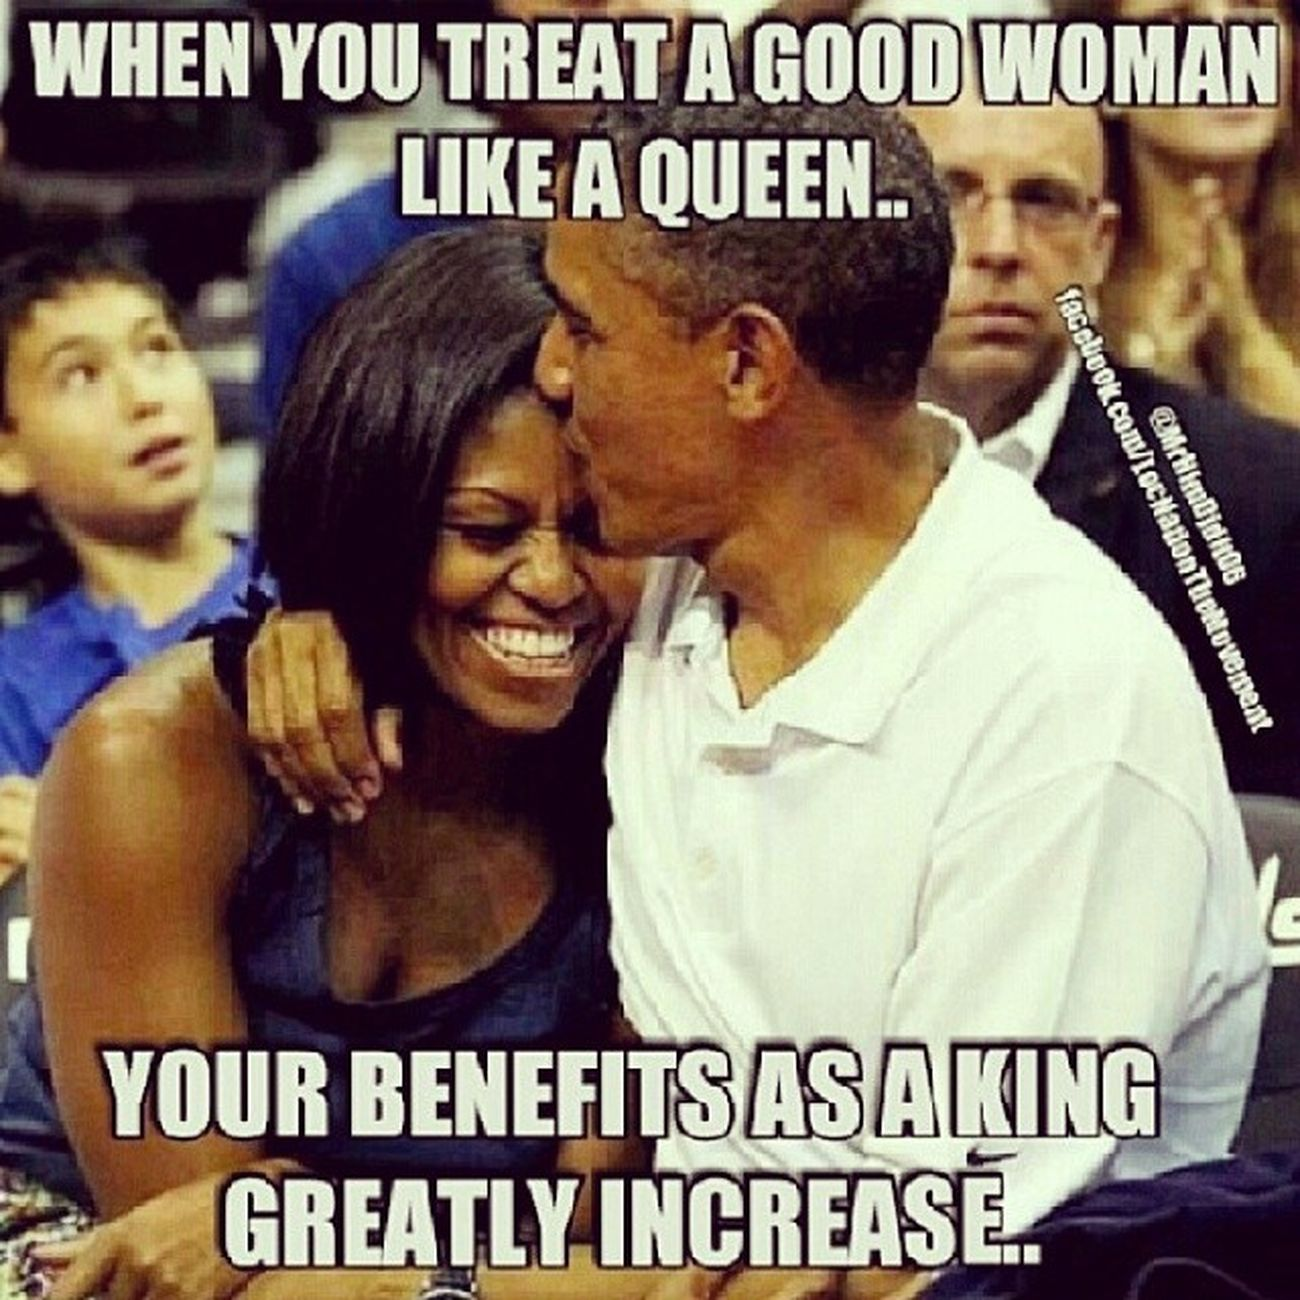 If you got a good woman treat her right, or another man will..simple as that. A King recognizes when he has a Queen. If he not treating you like a Queen then he's not a King, and fellas if she not acting like or being a Queen don't give her the benefits of one. You deserve just as good as she does. KingStatus WheremyQueen ? Powermoves Movingforward notimeforgames